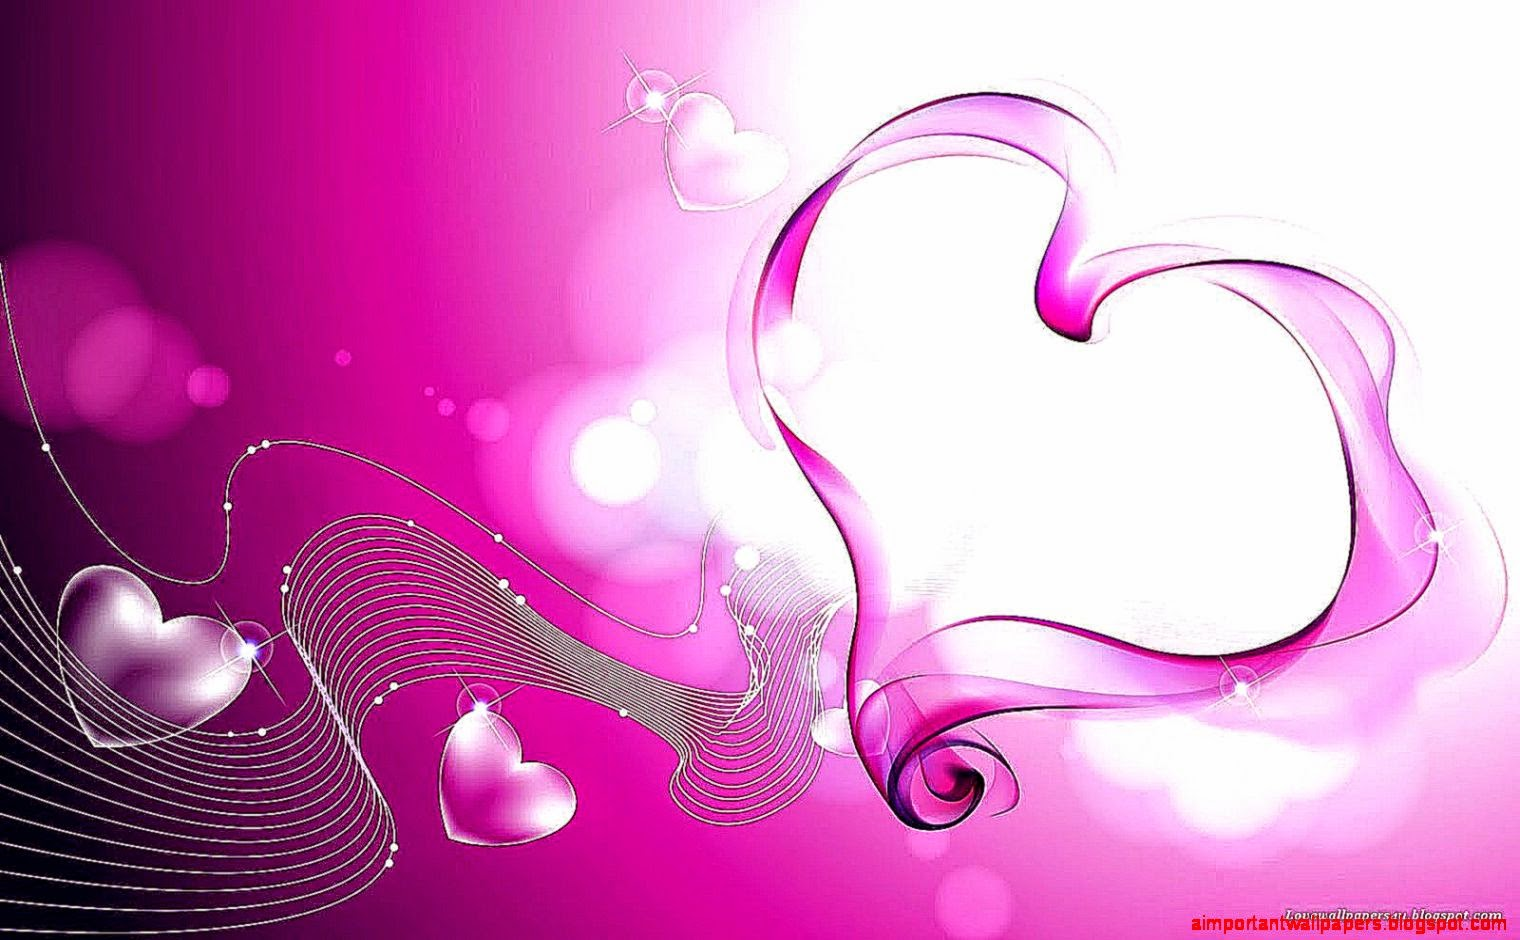 Background Love Wallpapers | Important Wallpapers